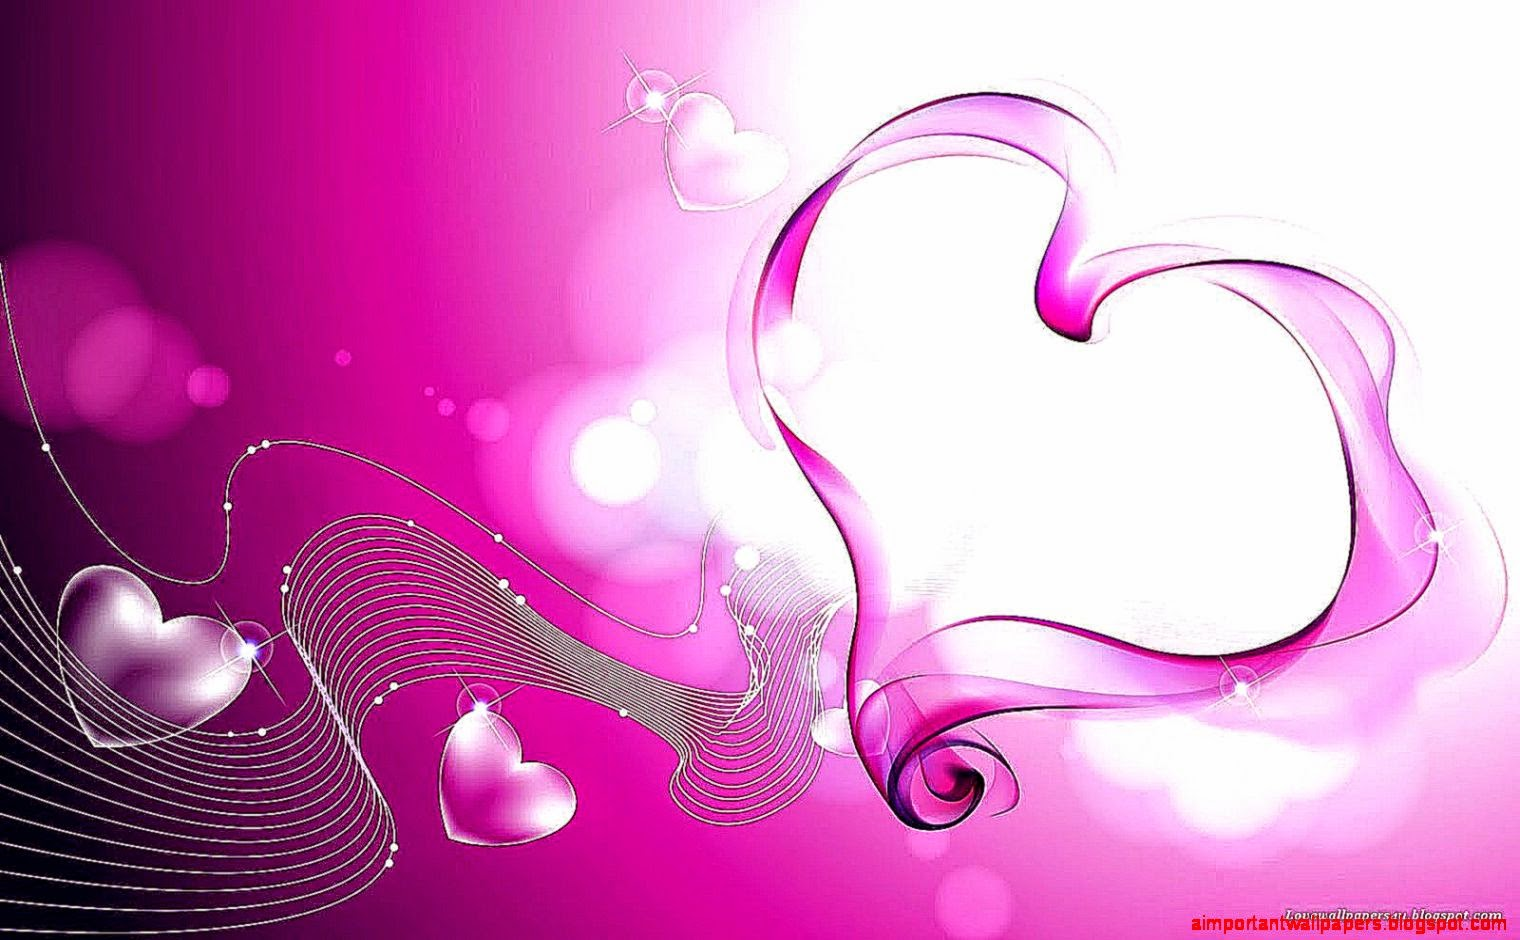 Background Love Wallpapers | Important Wallpapers